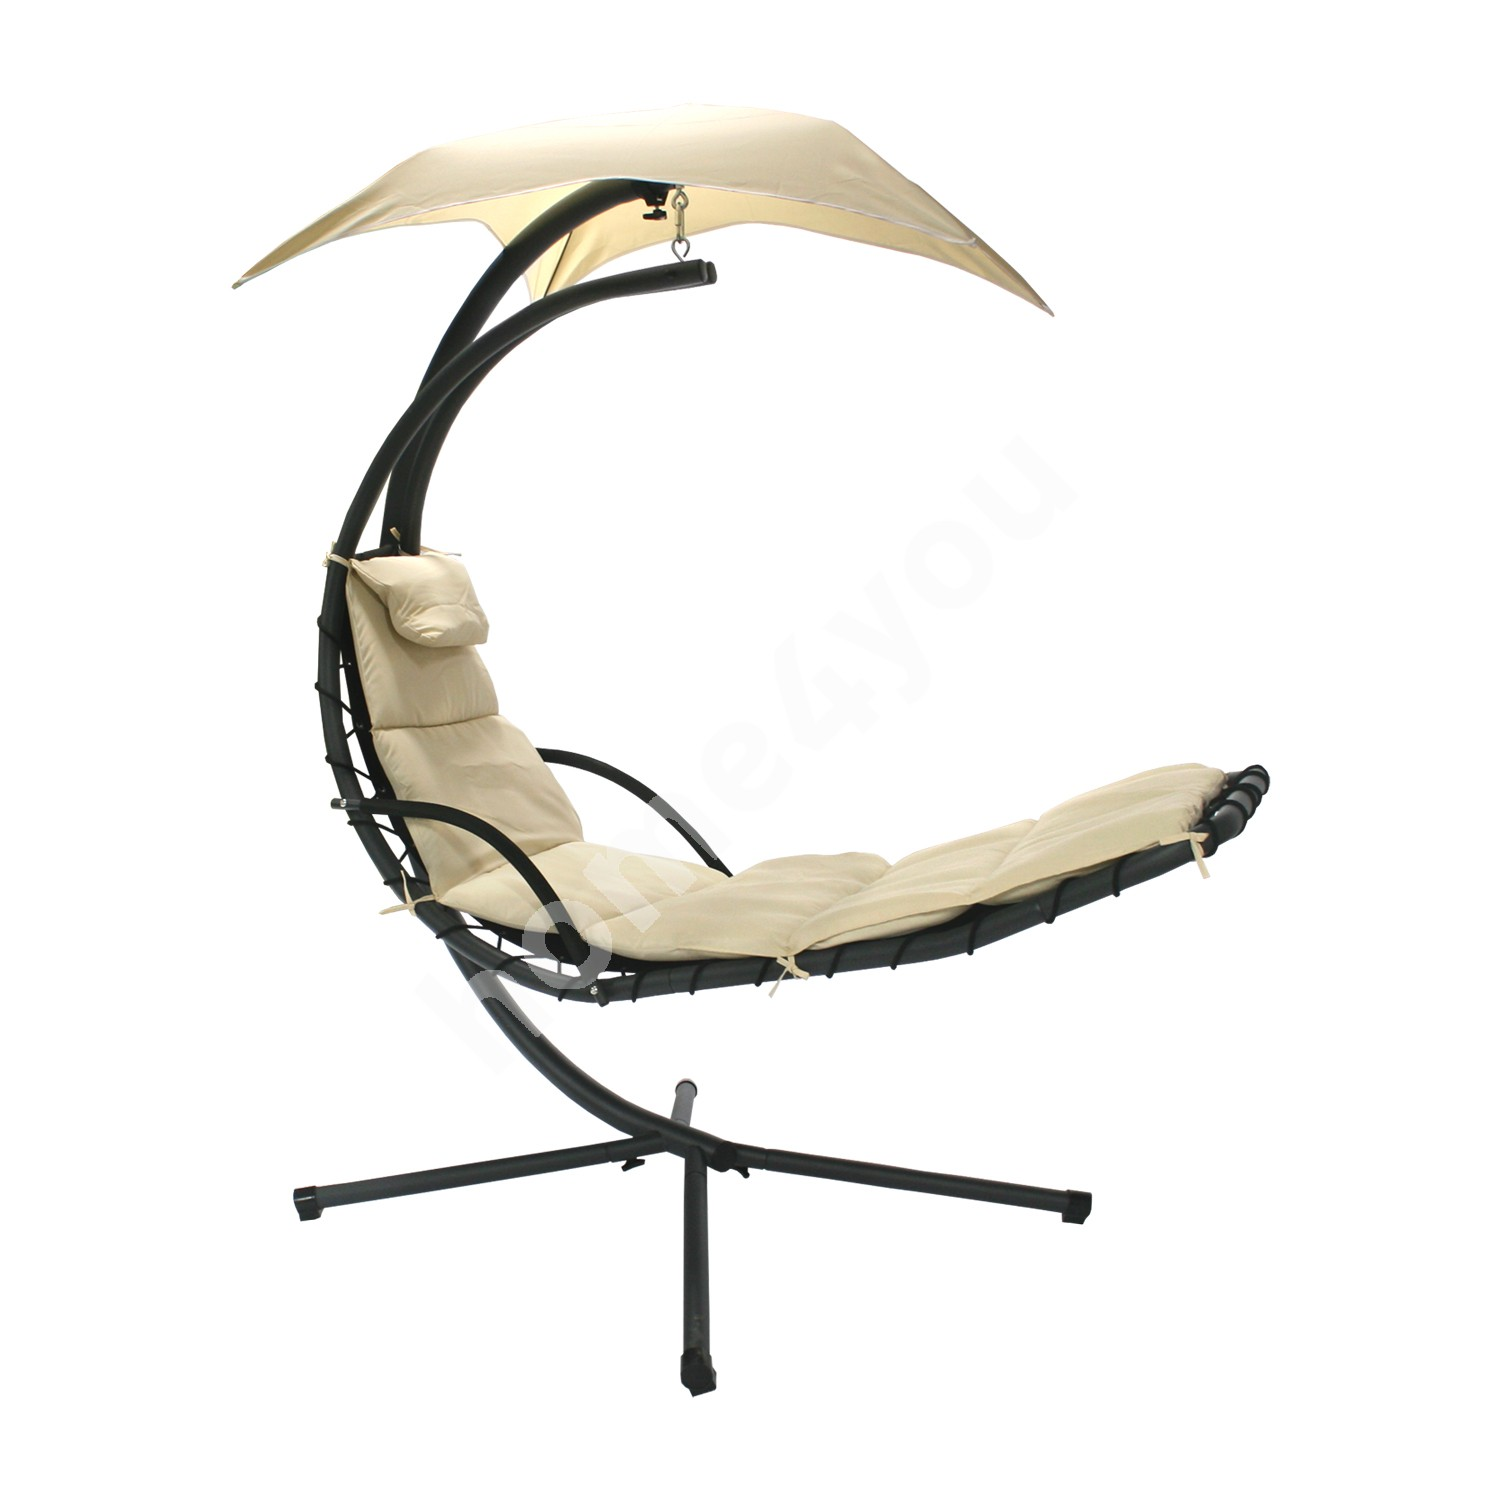 Hanging chair DREAM with awning, H205cm, color: beige